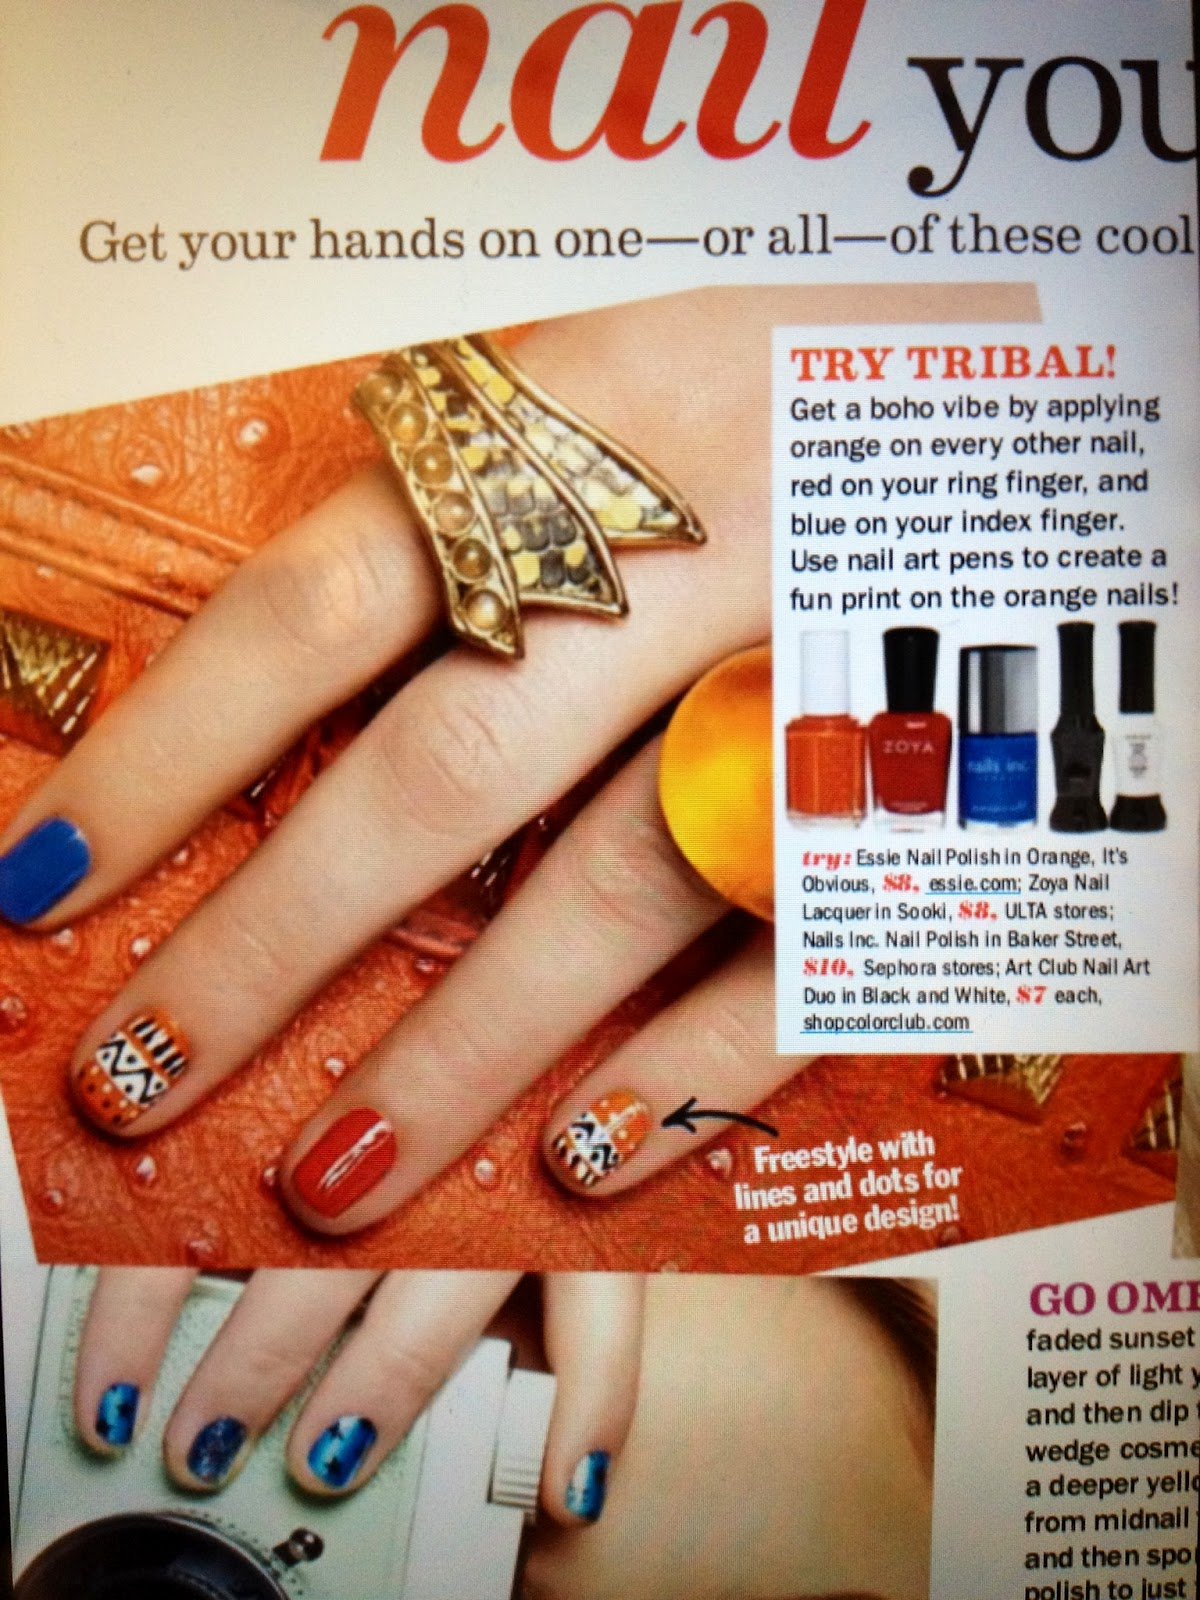 Ooh, Cute Nails!: Tribal Nails Inspired by Seventeen Magazine